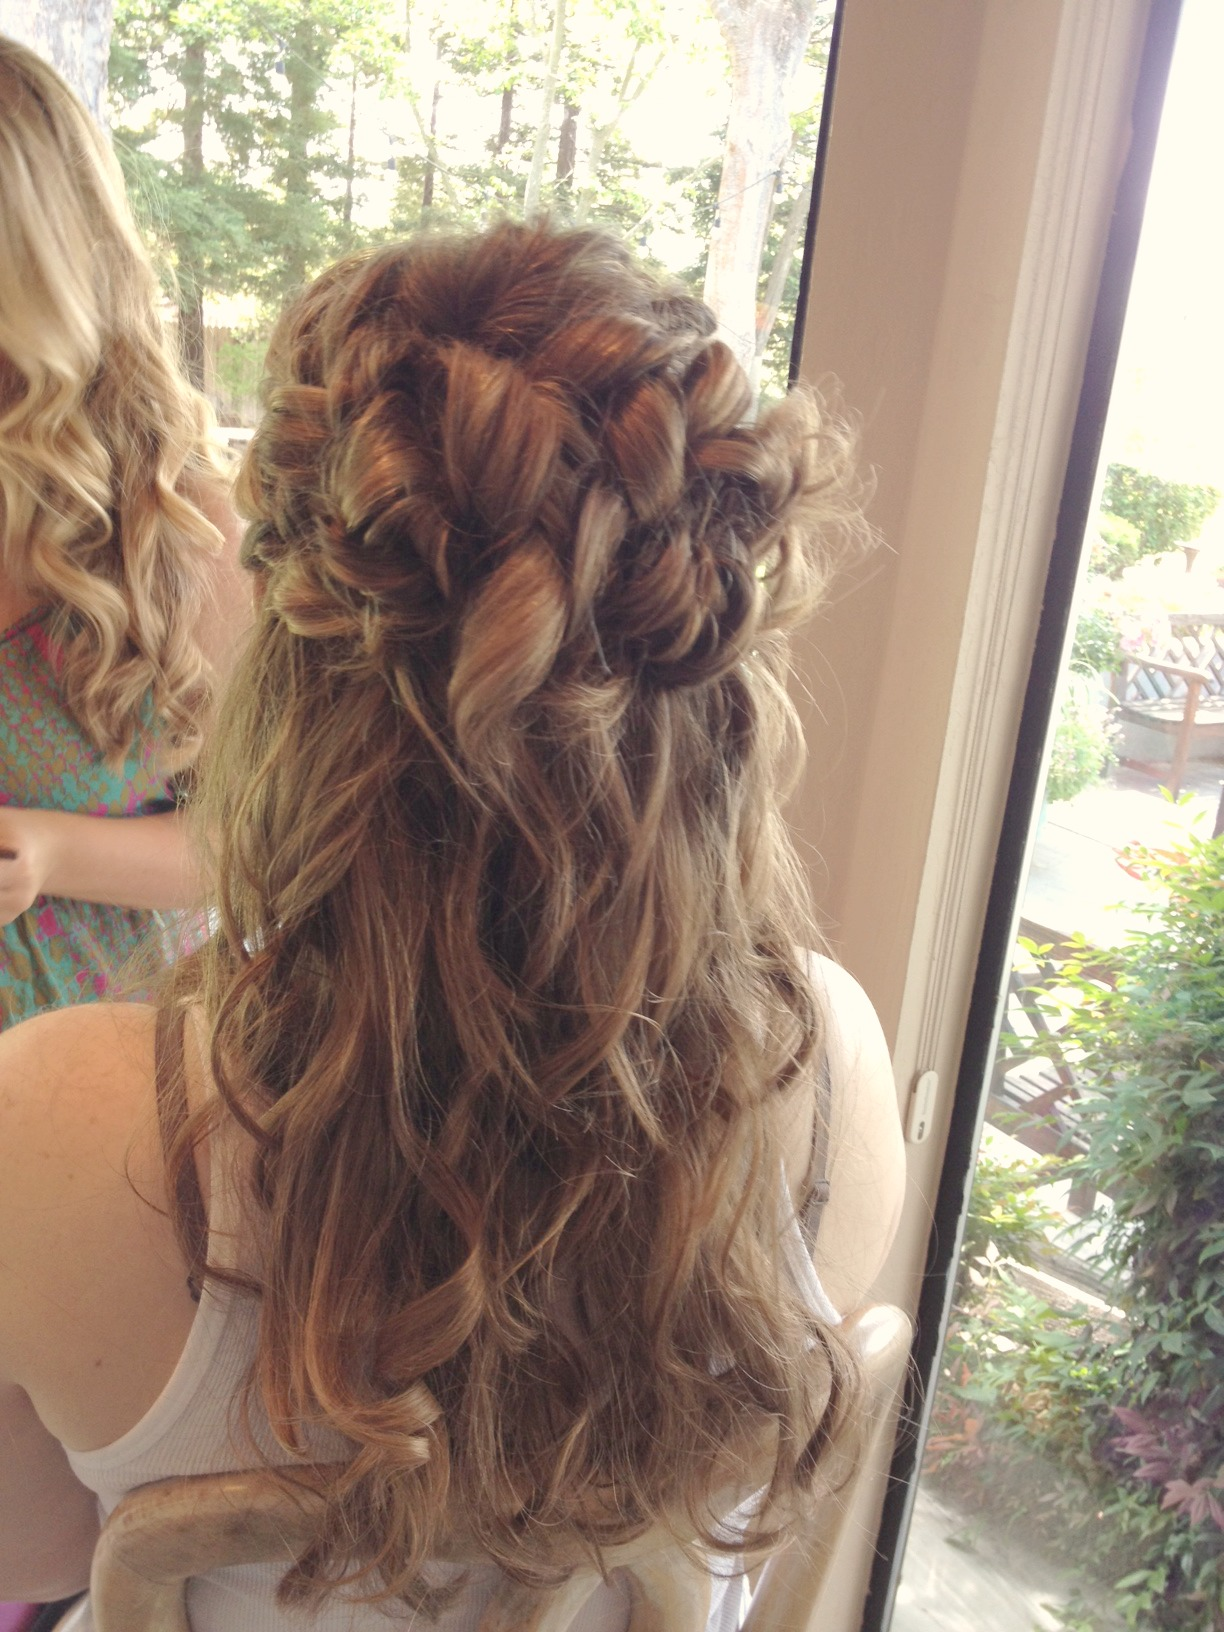 Kristens wedding hairstyle